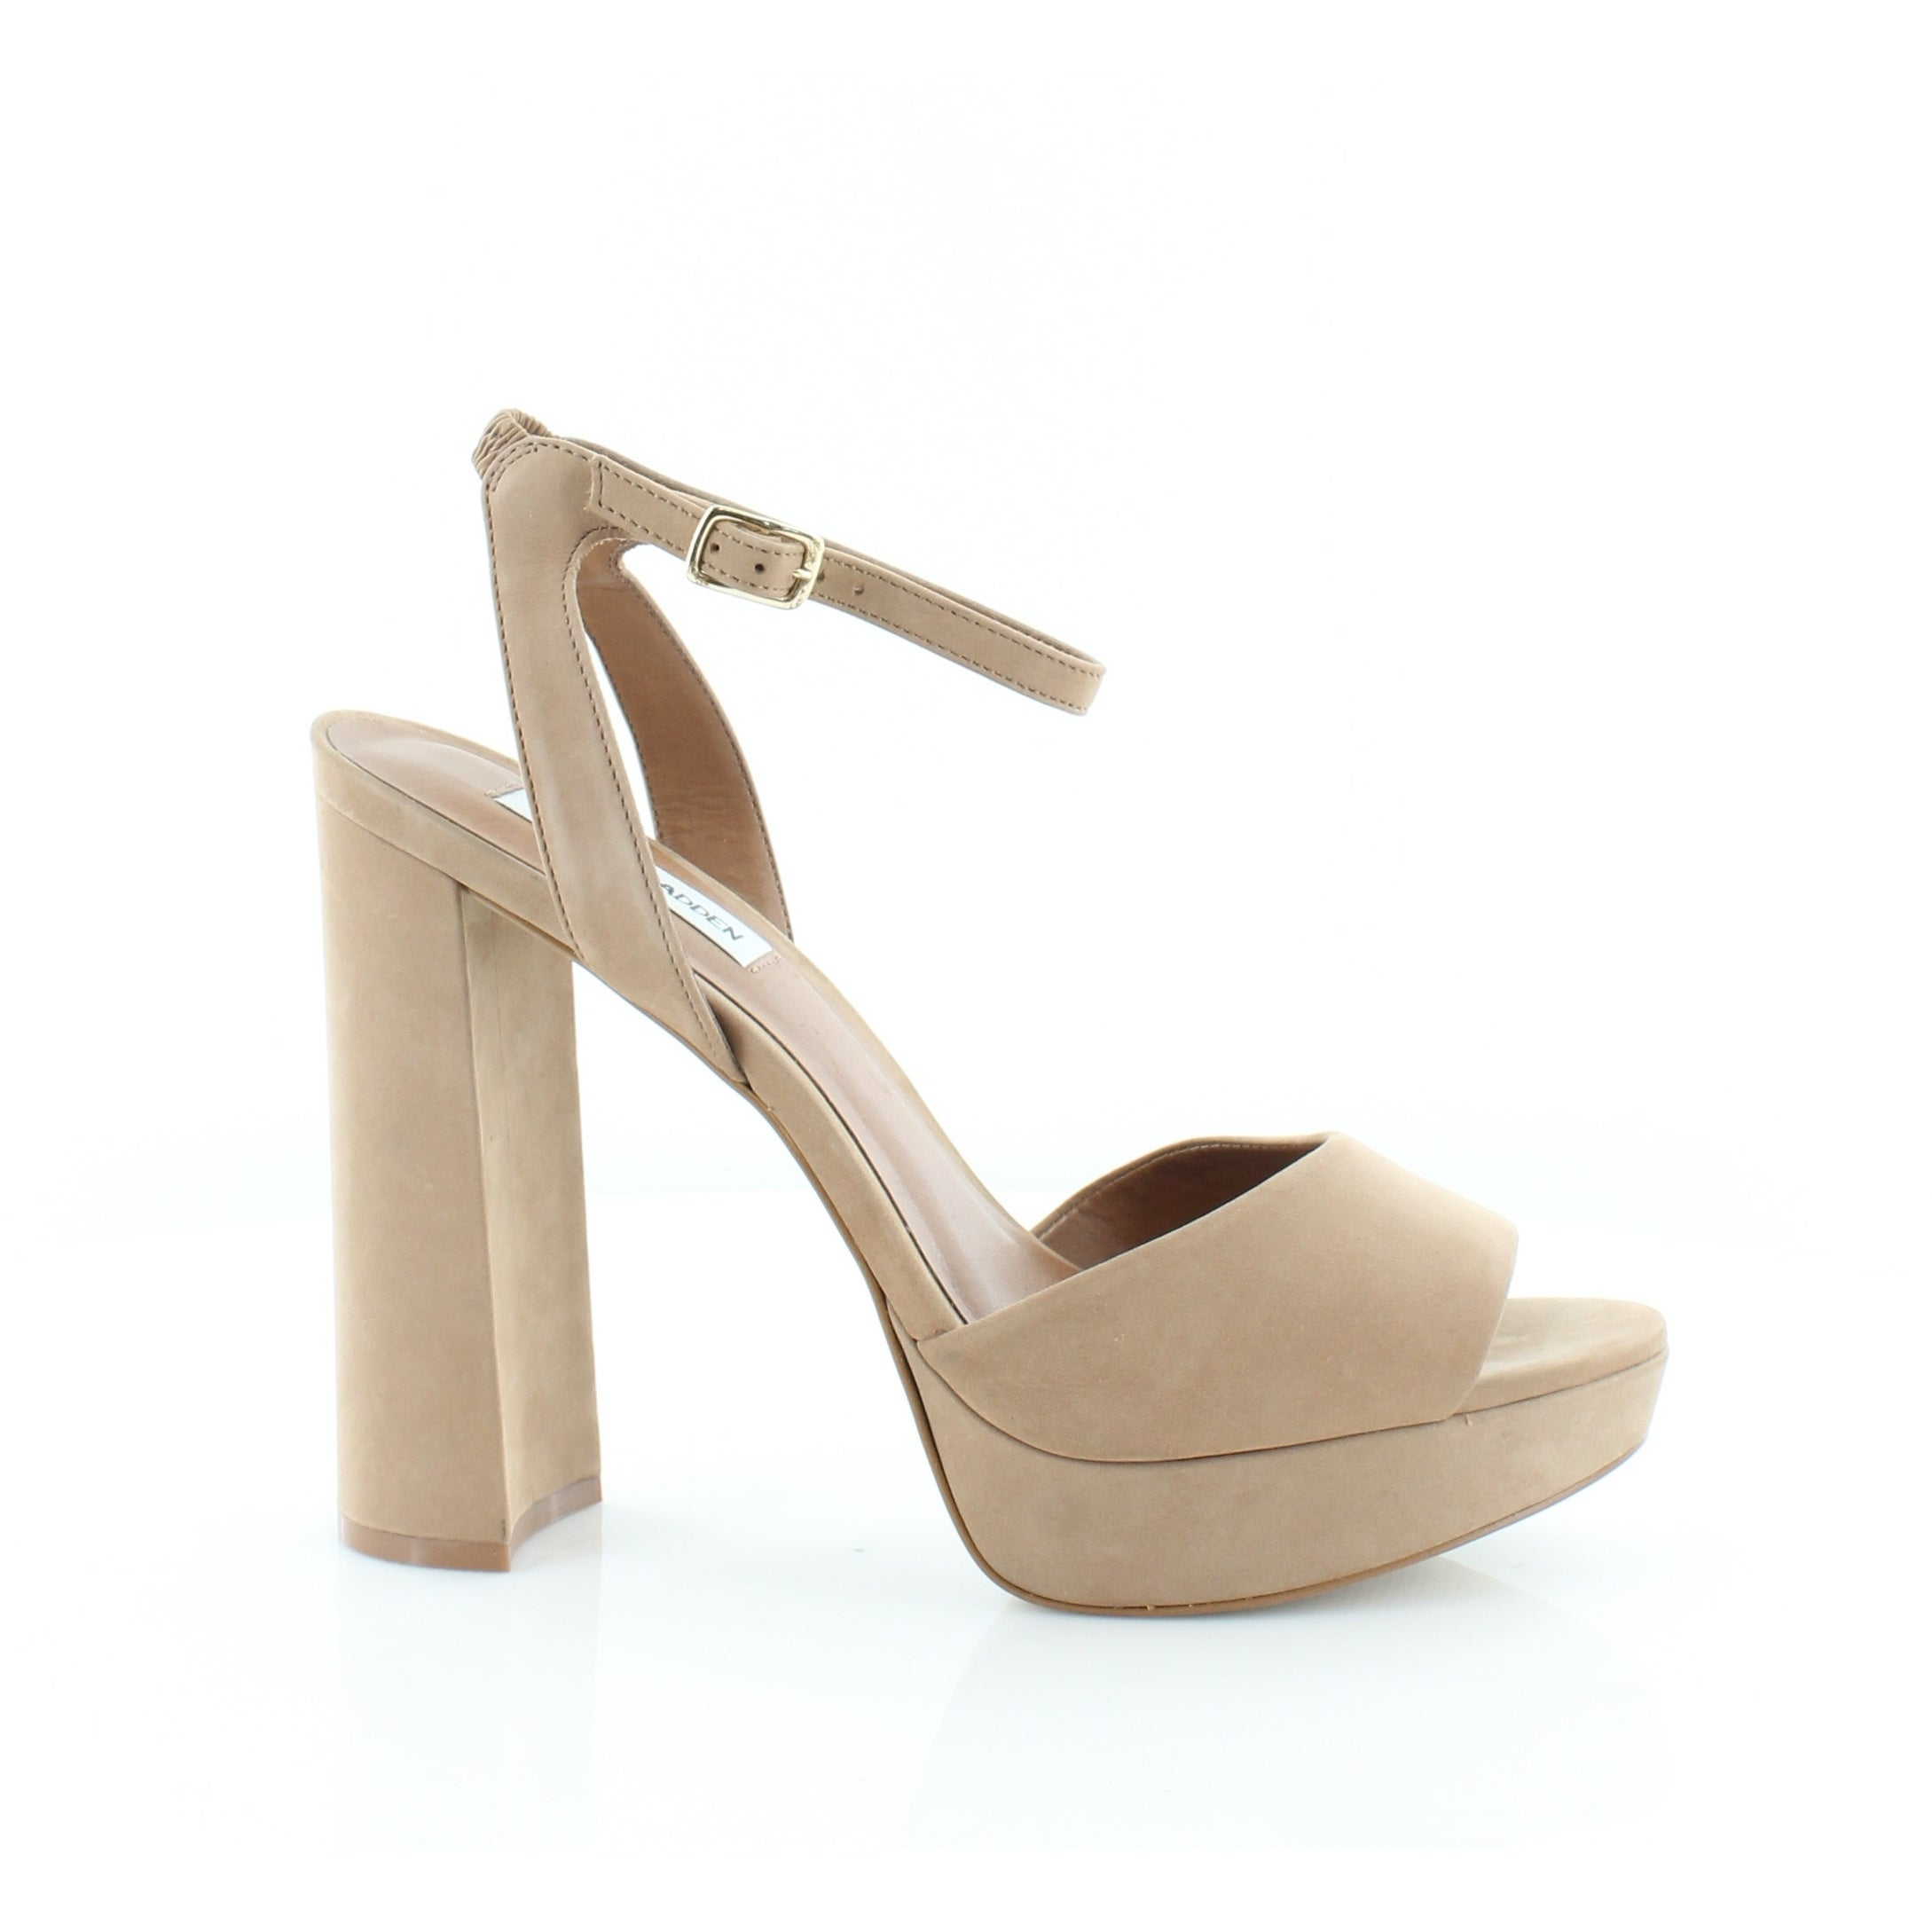 bc977fa0fba Shop Steve Madden Britt Women s Heels Camel - 11 - Free Shipping On Orders  Over  45 - Overstock - 21553886